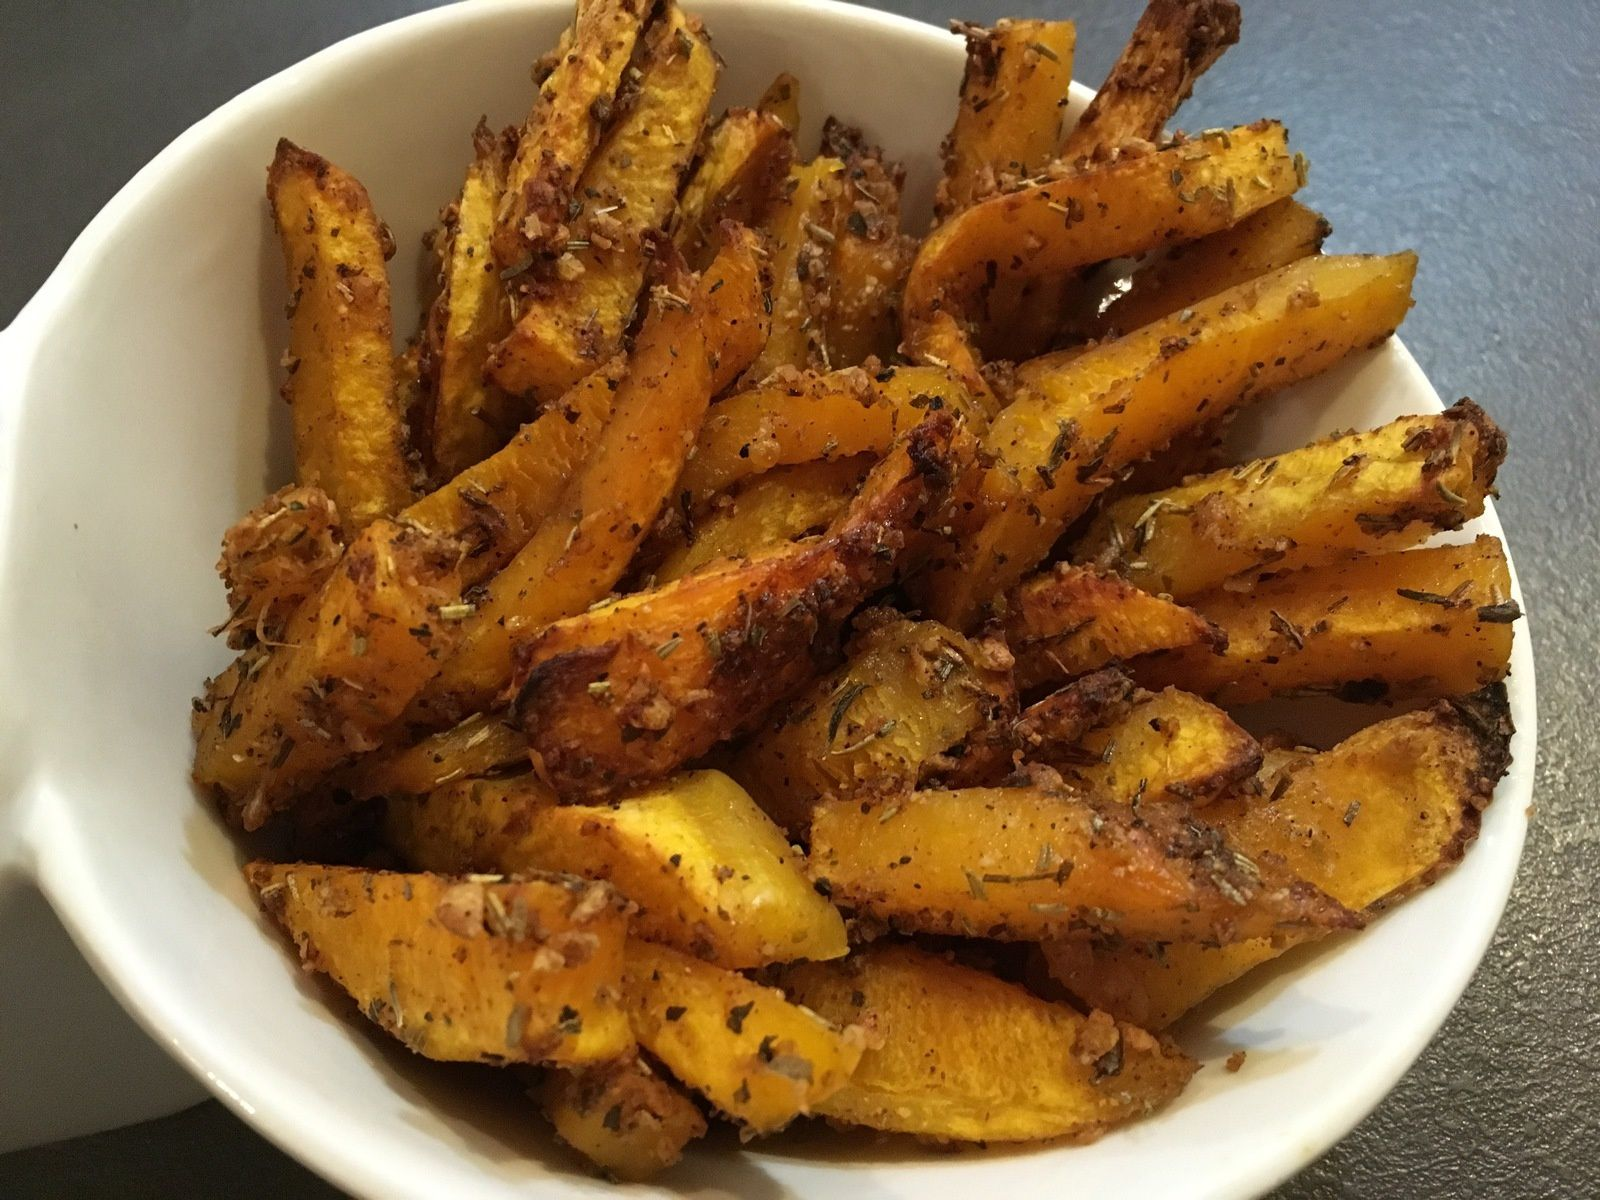 Country potatoes de courge butternut